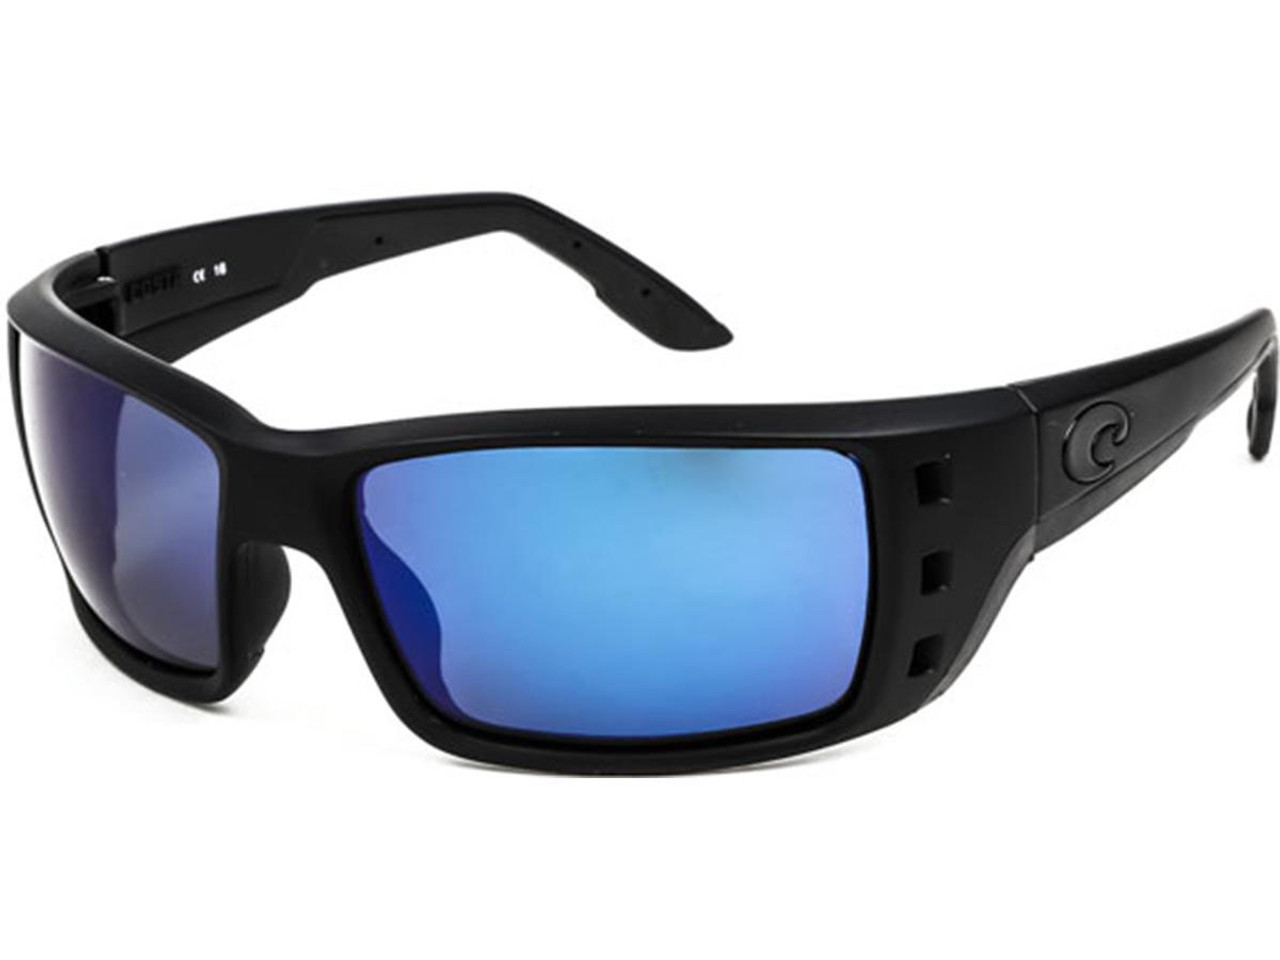 6b3b5aa315 Costa Del Mar - Permit Polarized Sunglasses (Color  Blackout   580g Blue  Mirror) - Hero Outdoors